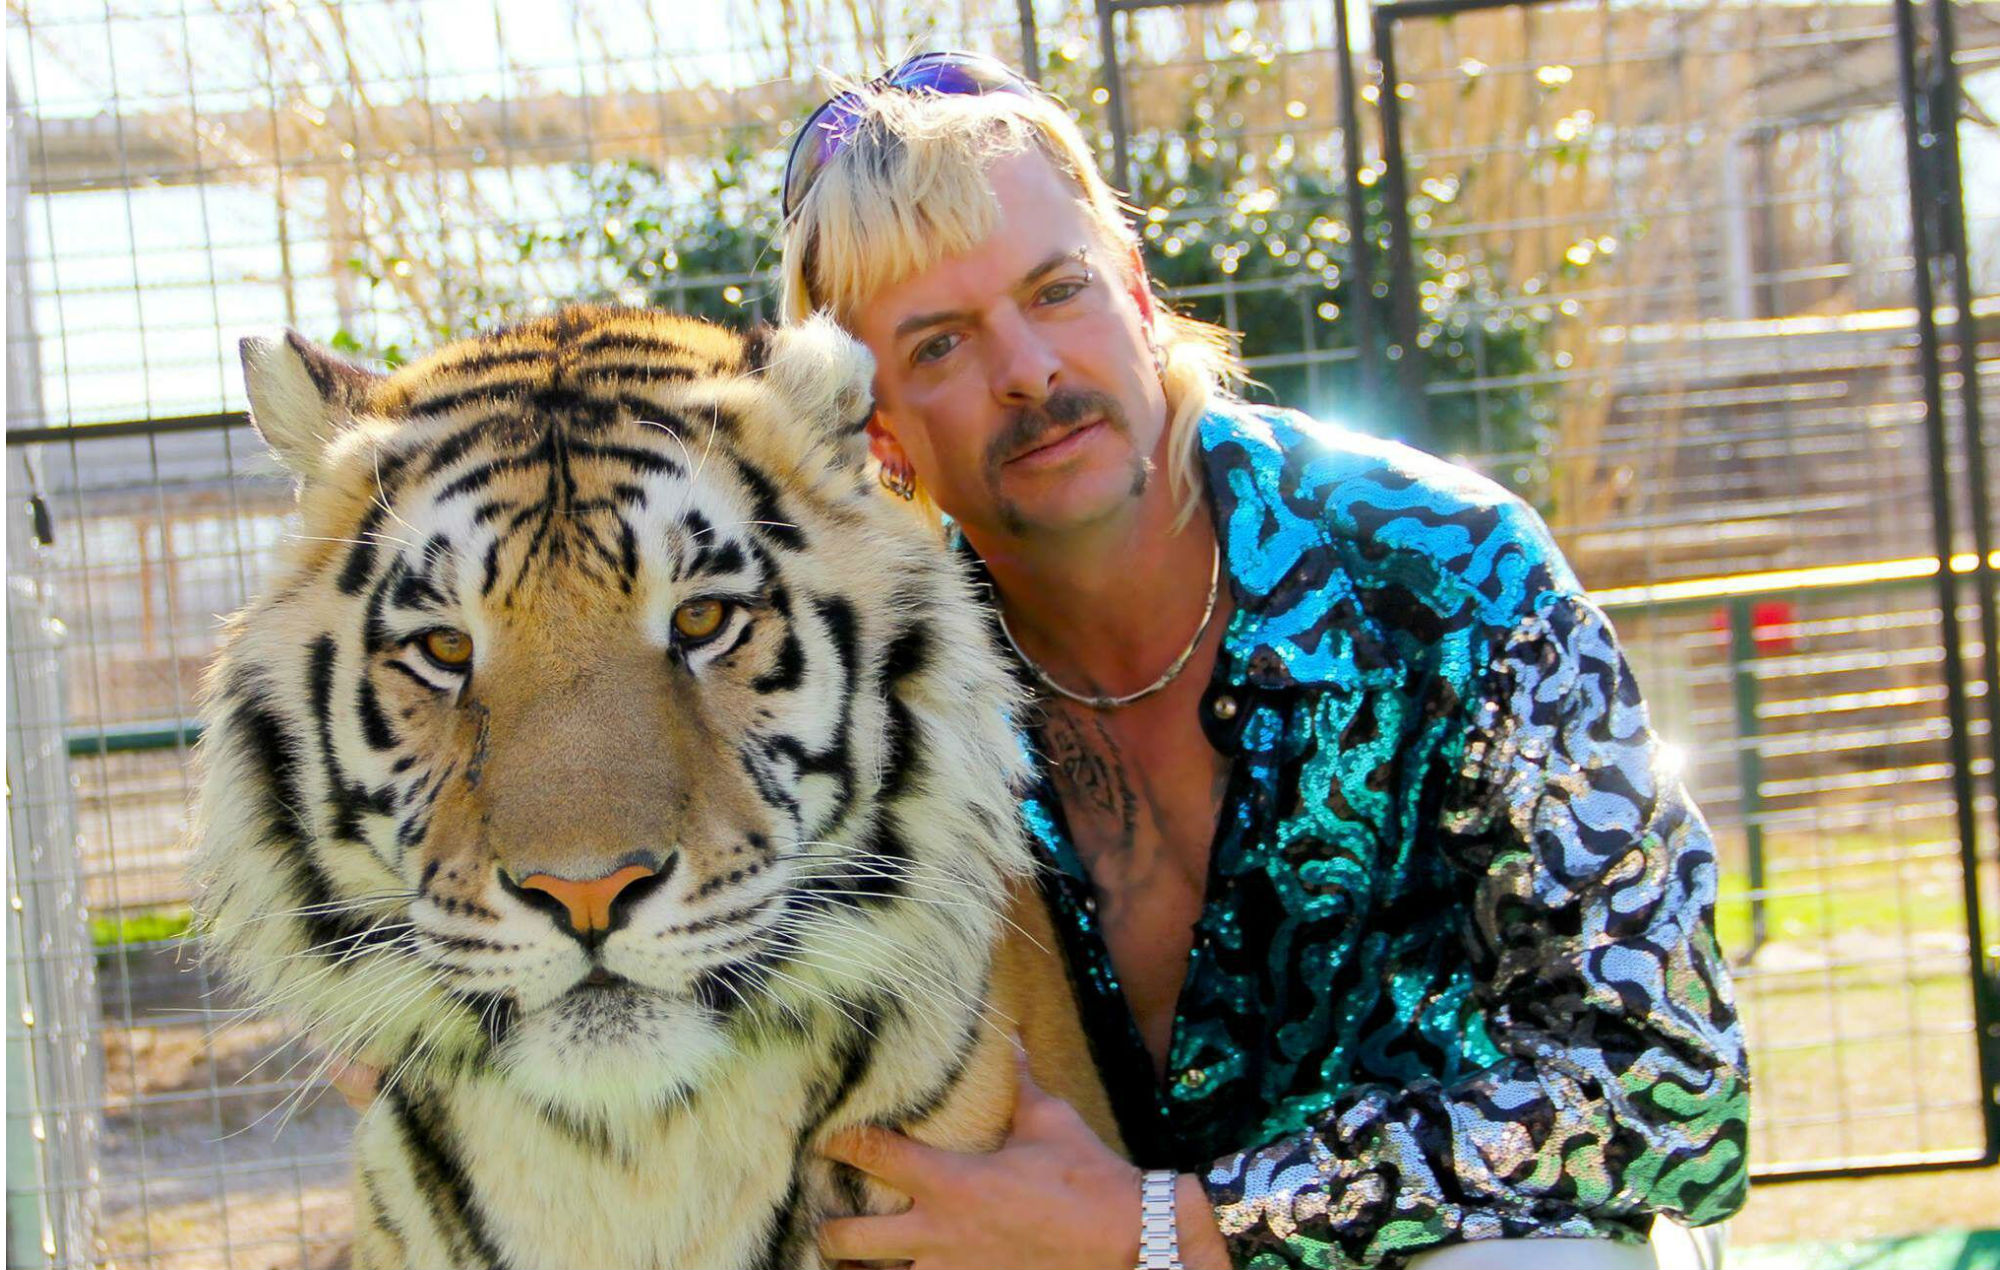 joeexotic-tigerking-2000x1270-1.jpg